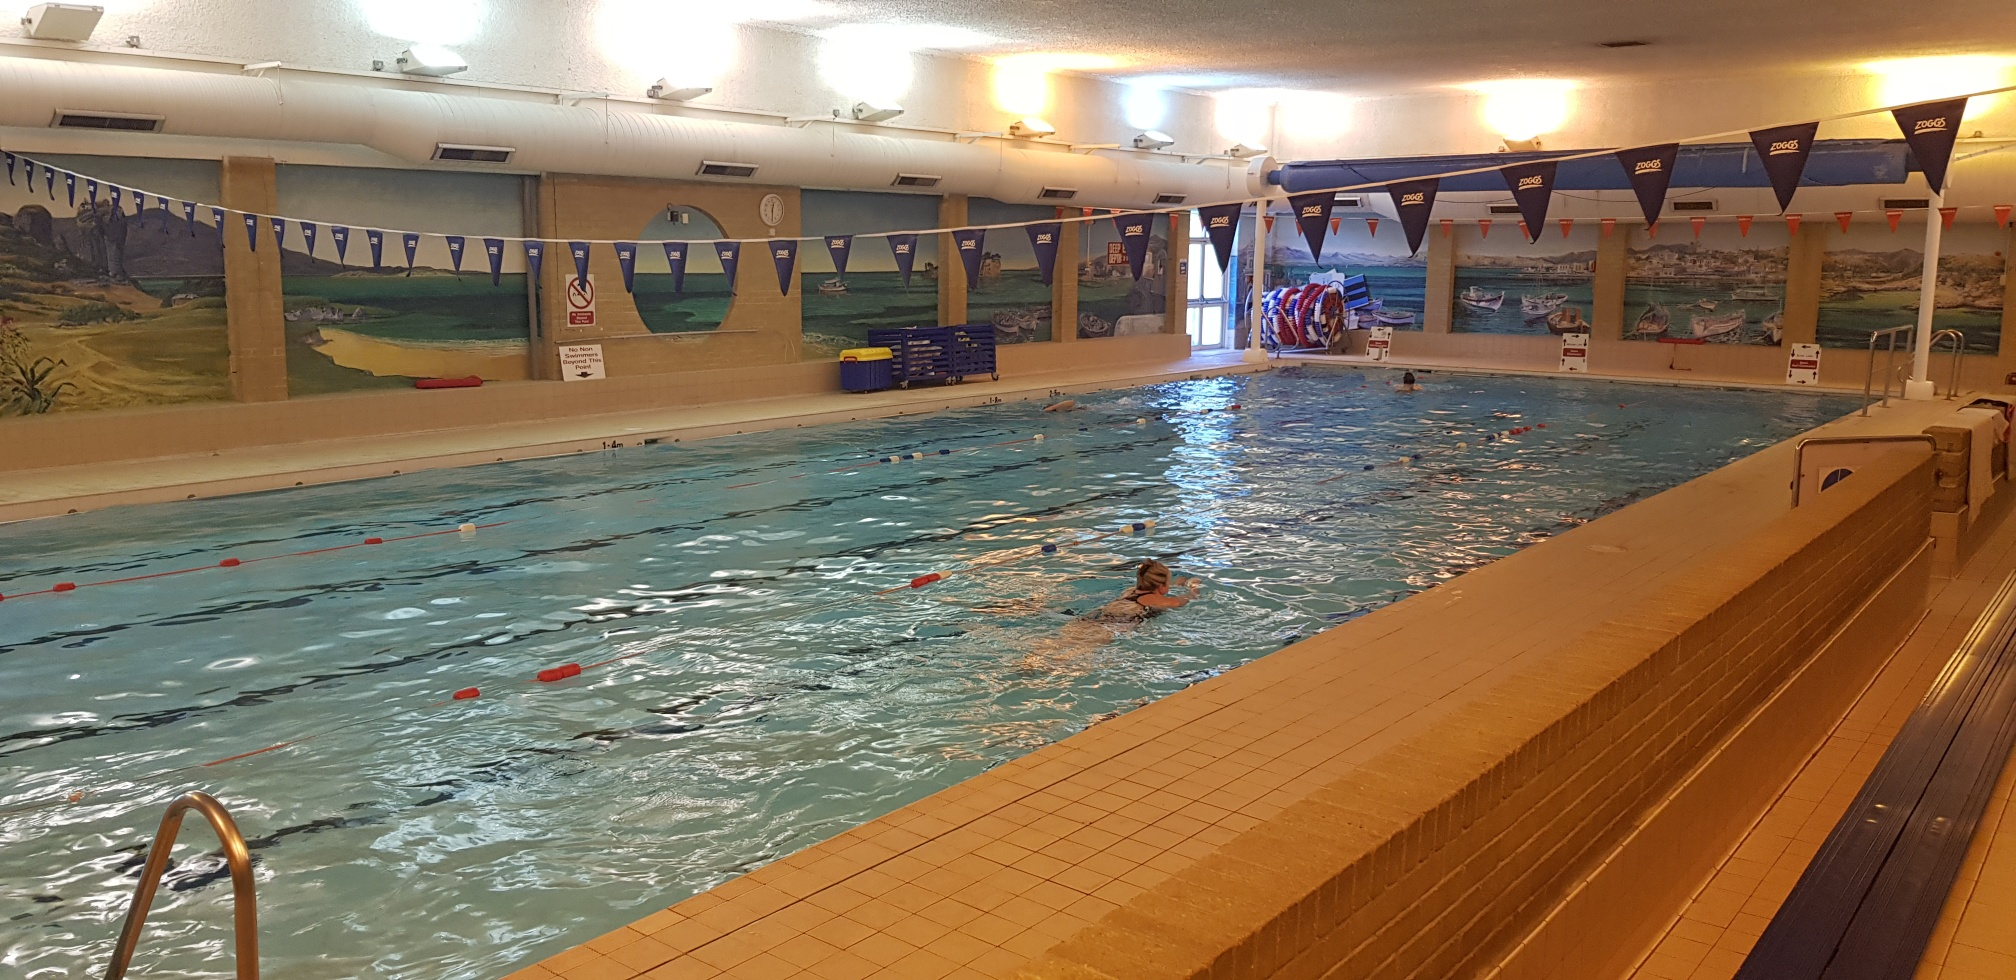 fanshawe indoor swimming pool with swimmers